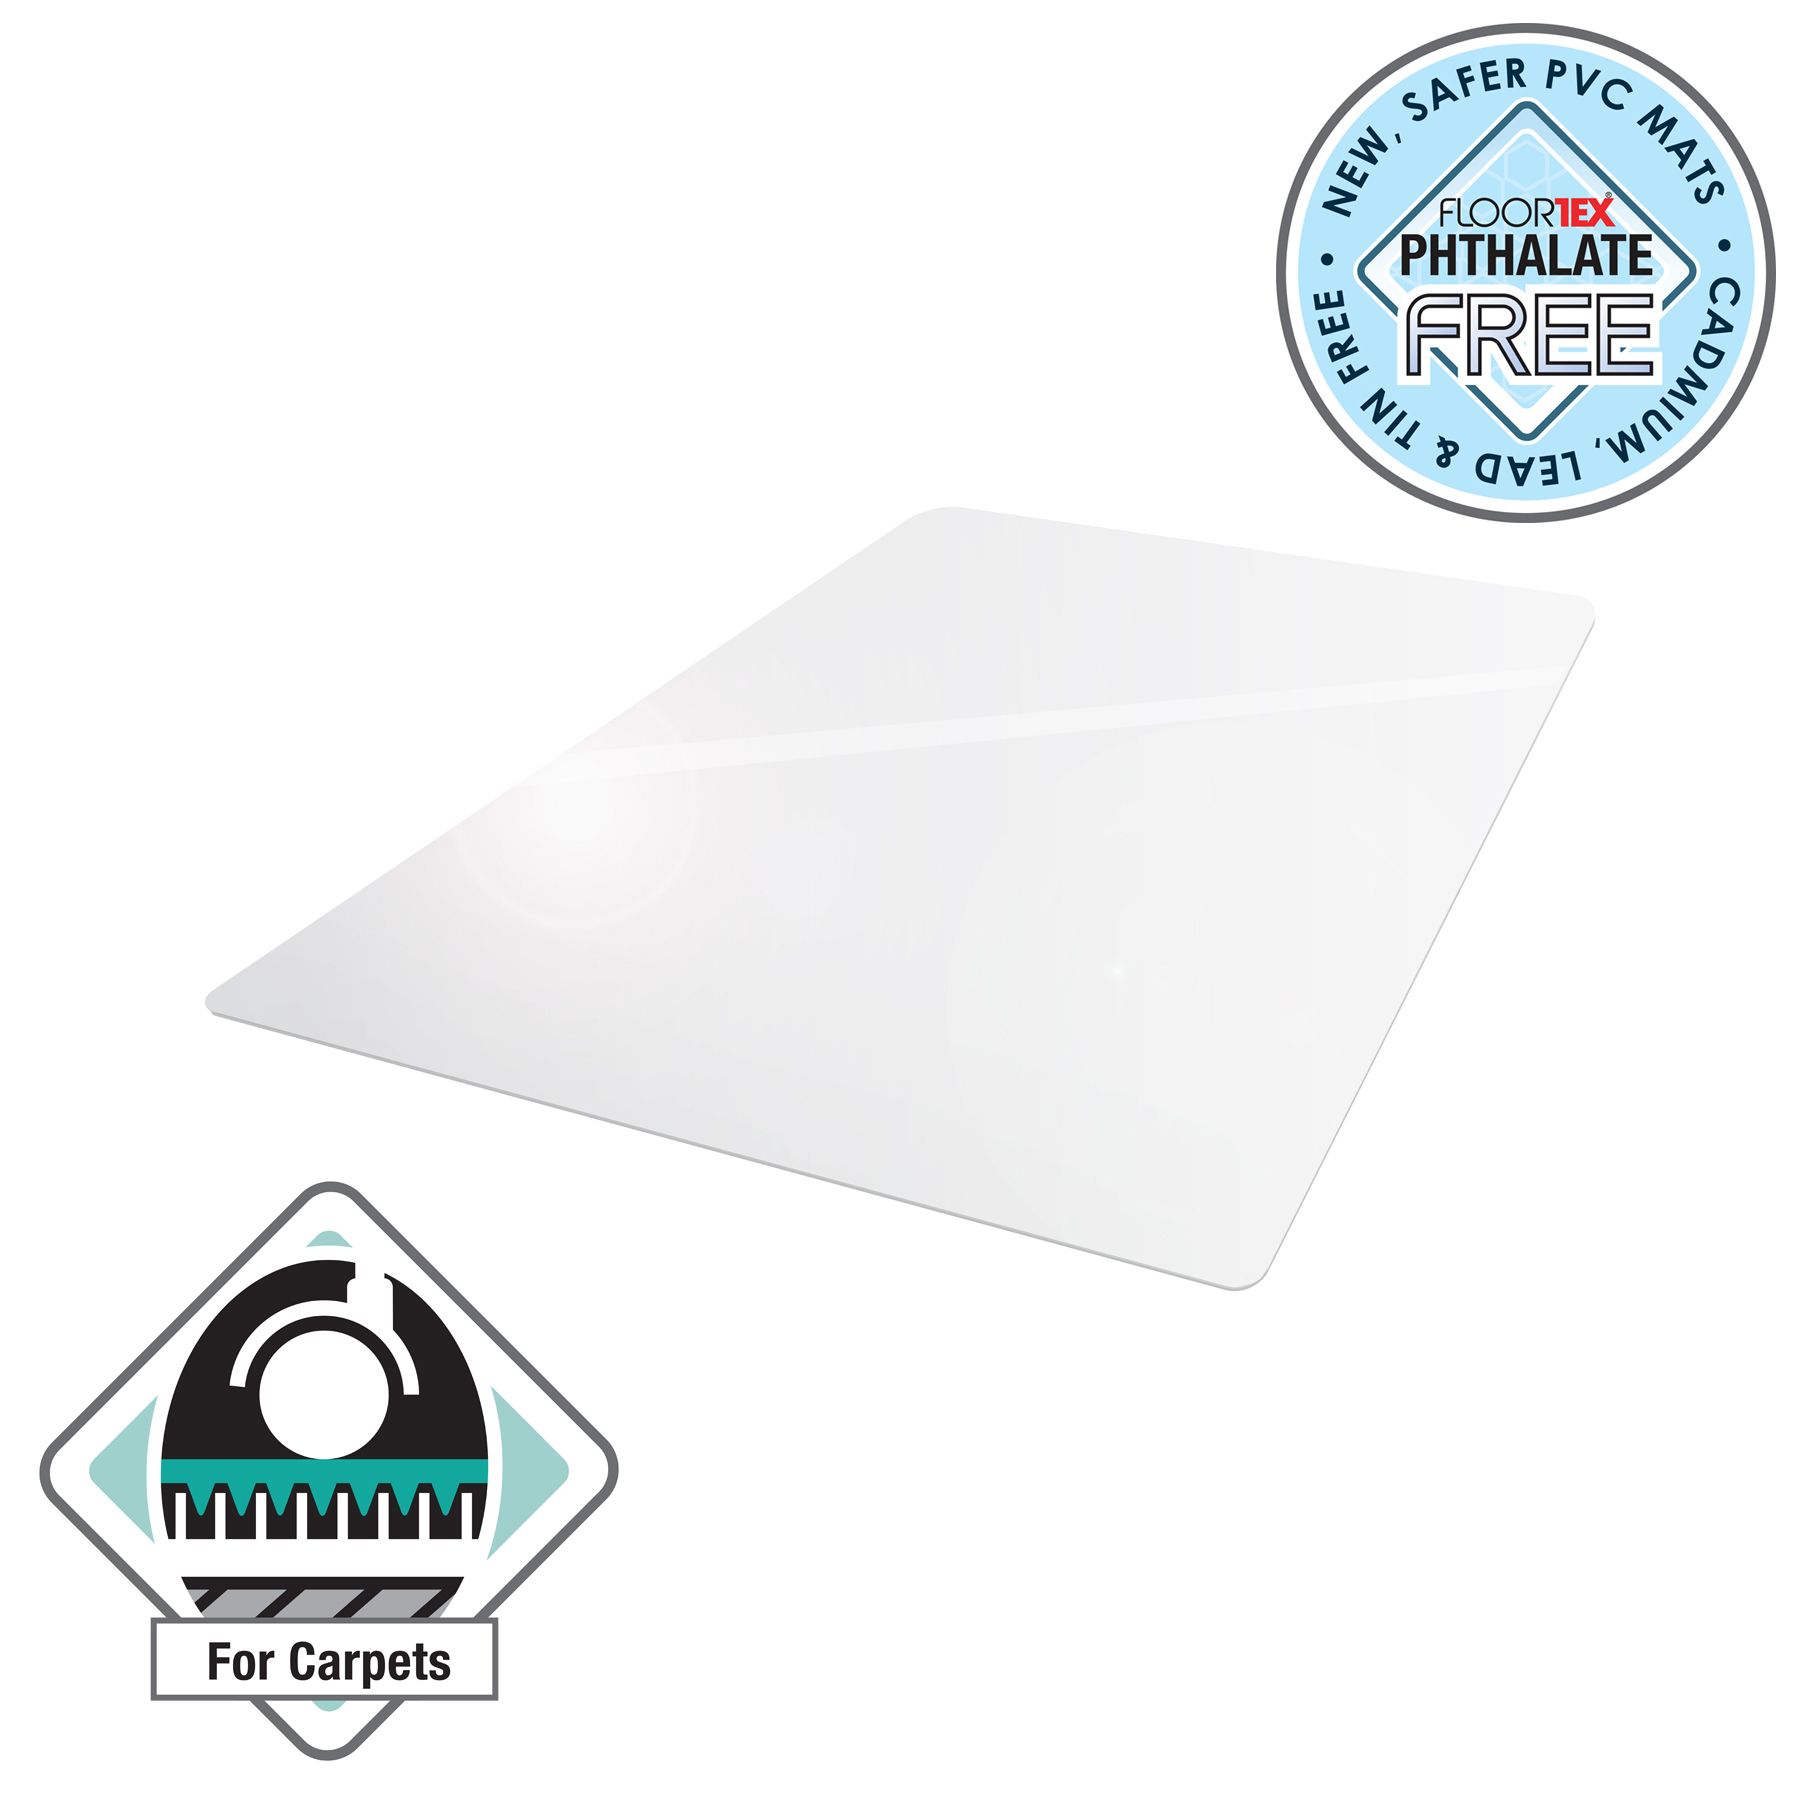 For Hard Floors Cleartex Advantagemat Chair Mat For Carpets Rectangular 1200x1500mm Clear Ref FCVPF1115225EV